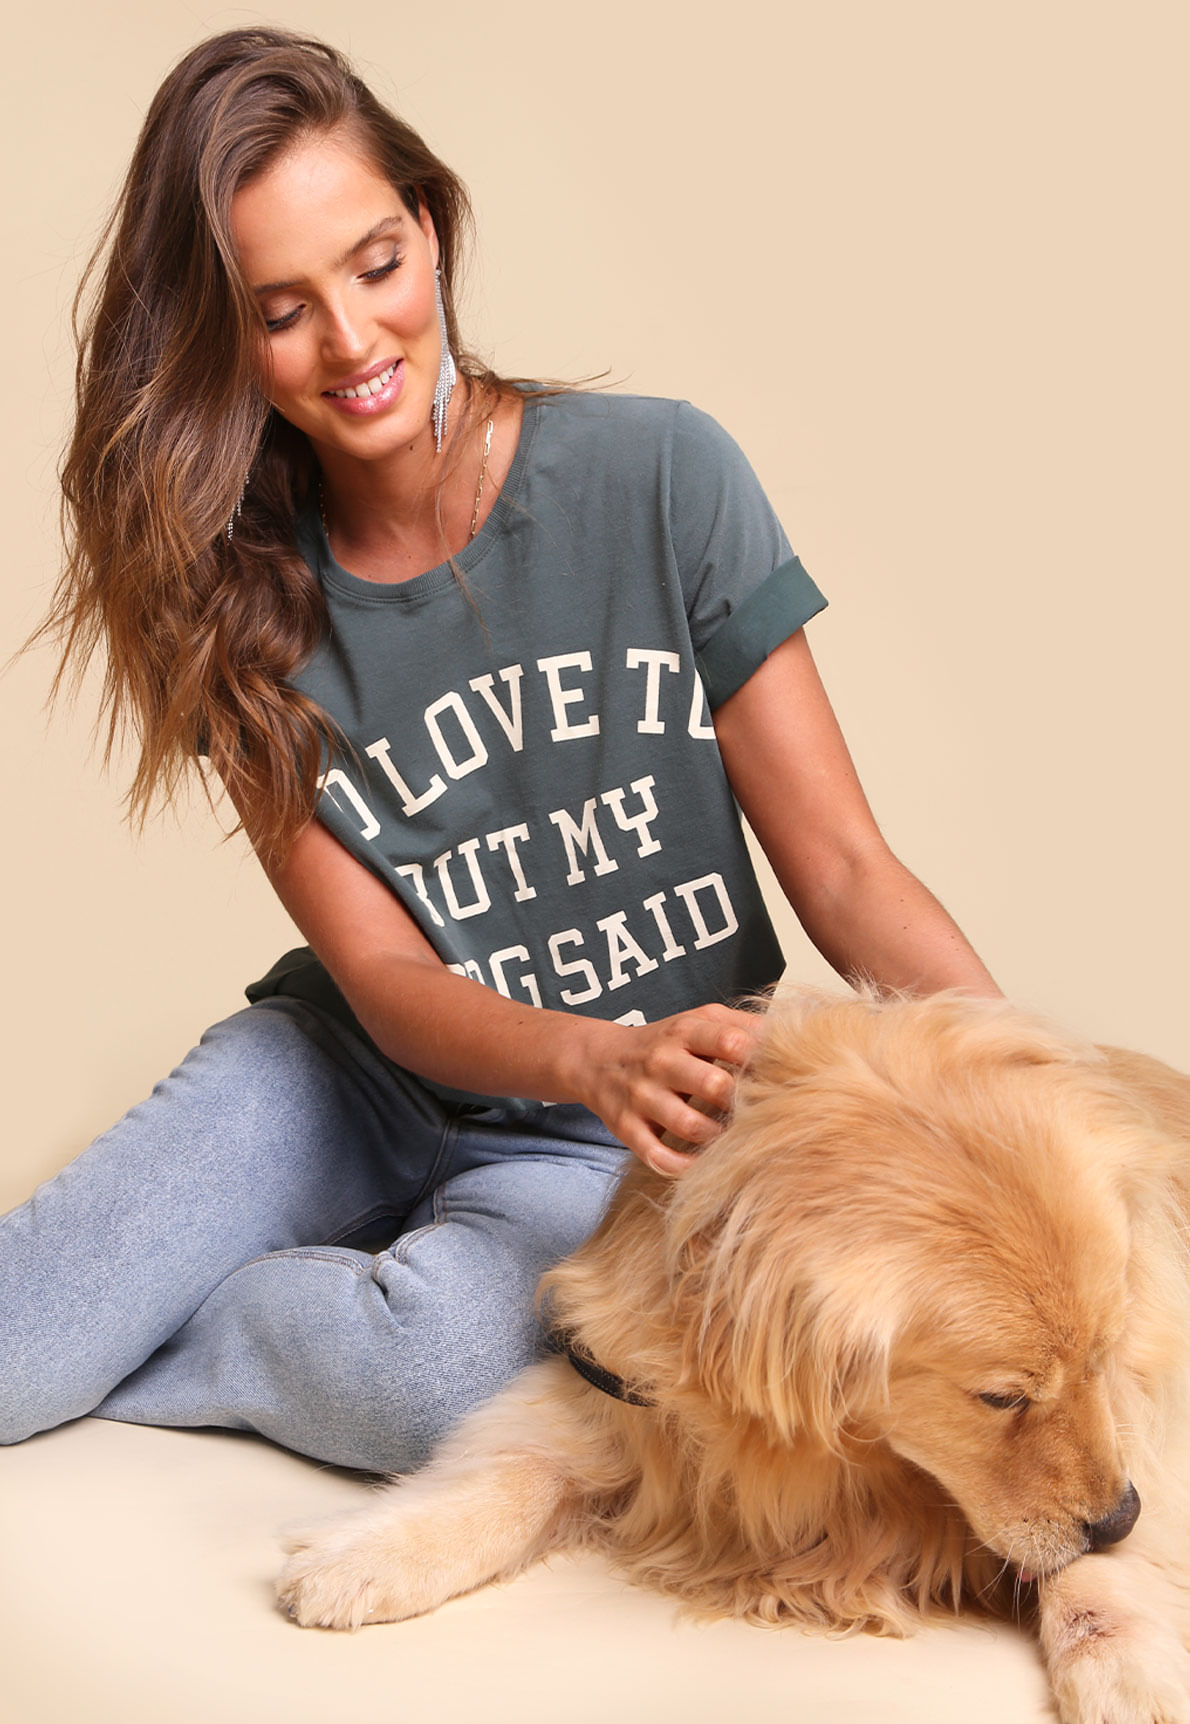 31370-t-shirt-my-dog-said-no-01